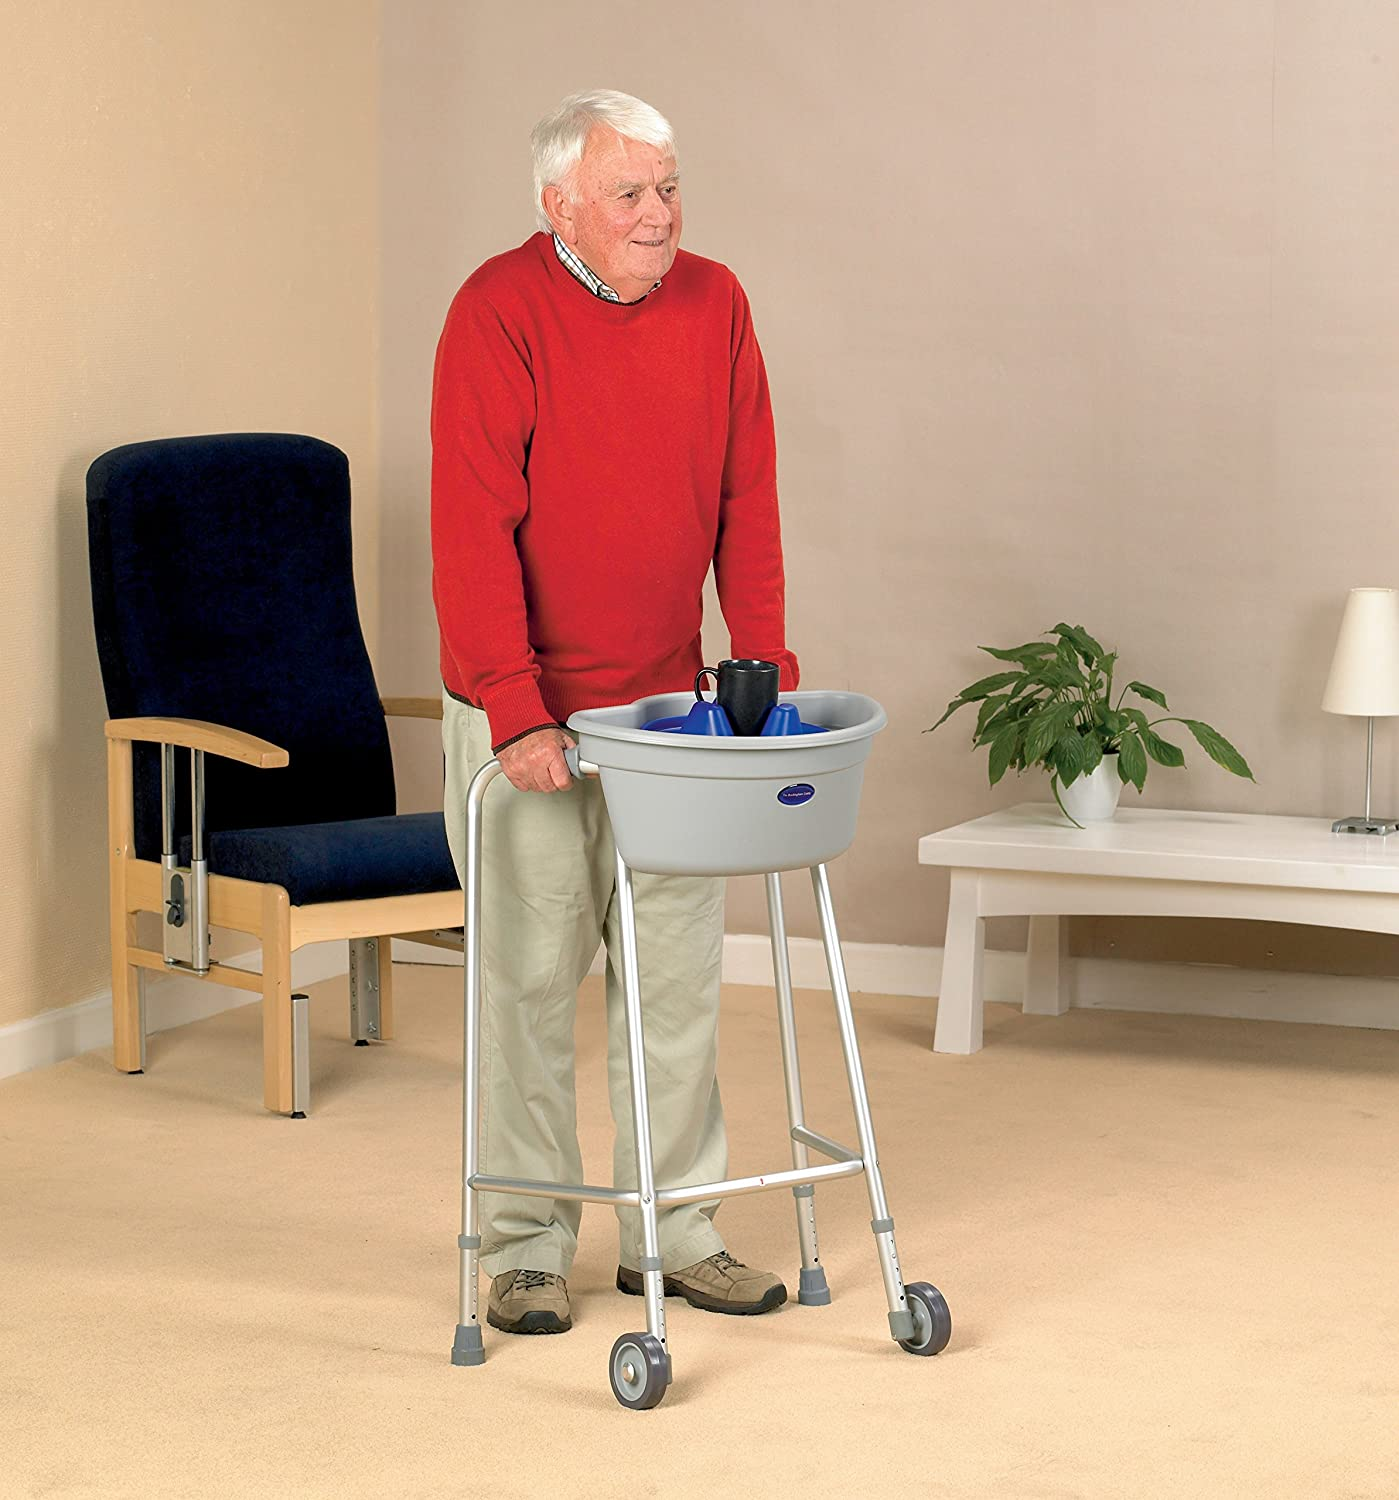 buckingham walking frame caddy amazoncouk health personal care - Zimmer Frame